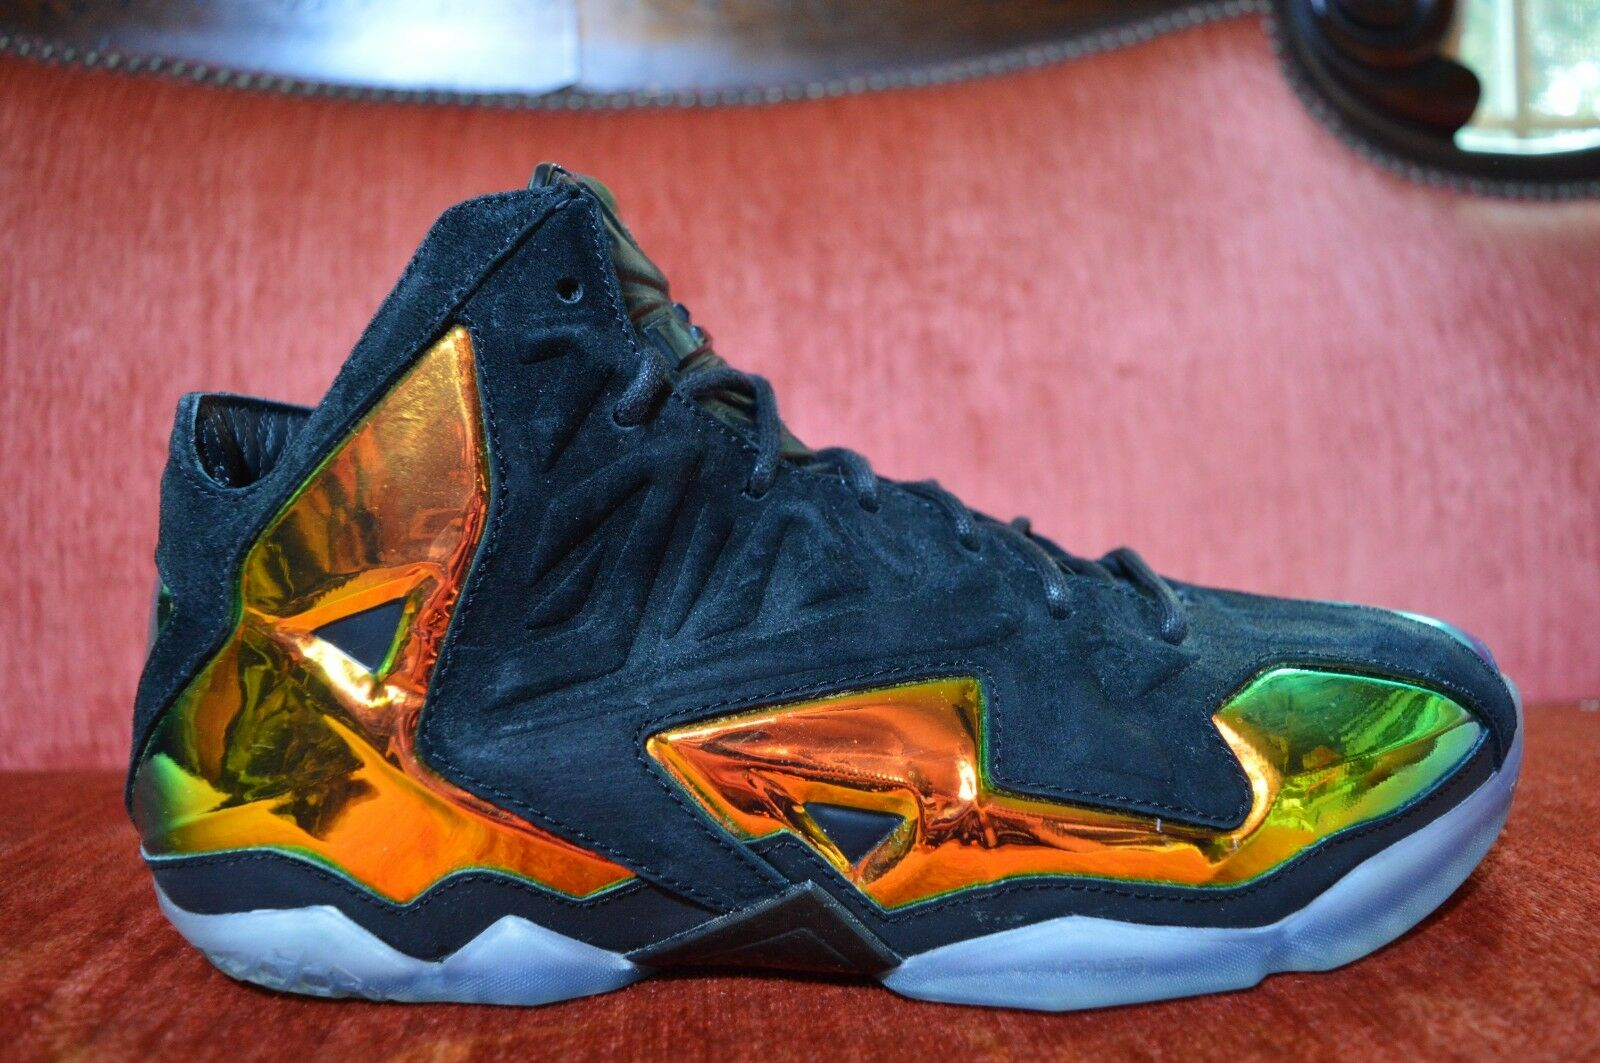 WORN 2X NIKE LEBRON XI 11 EXT QS  KINGS CROWN  BLACK-METALLIC gold 677693-001